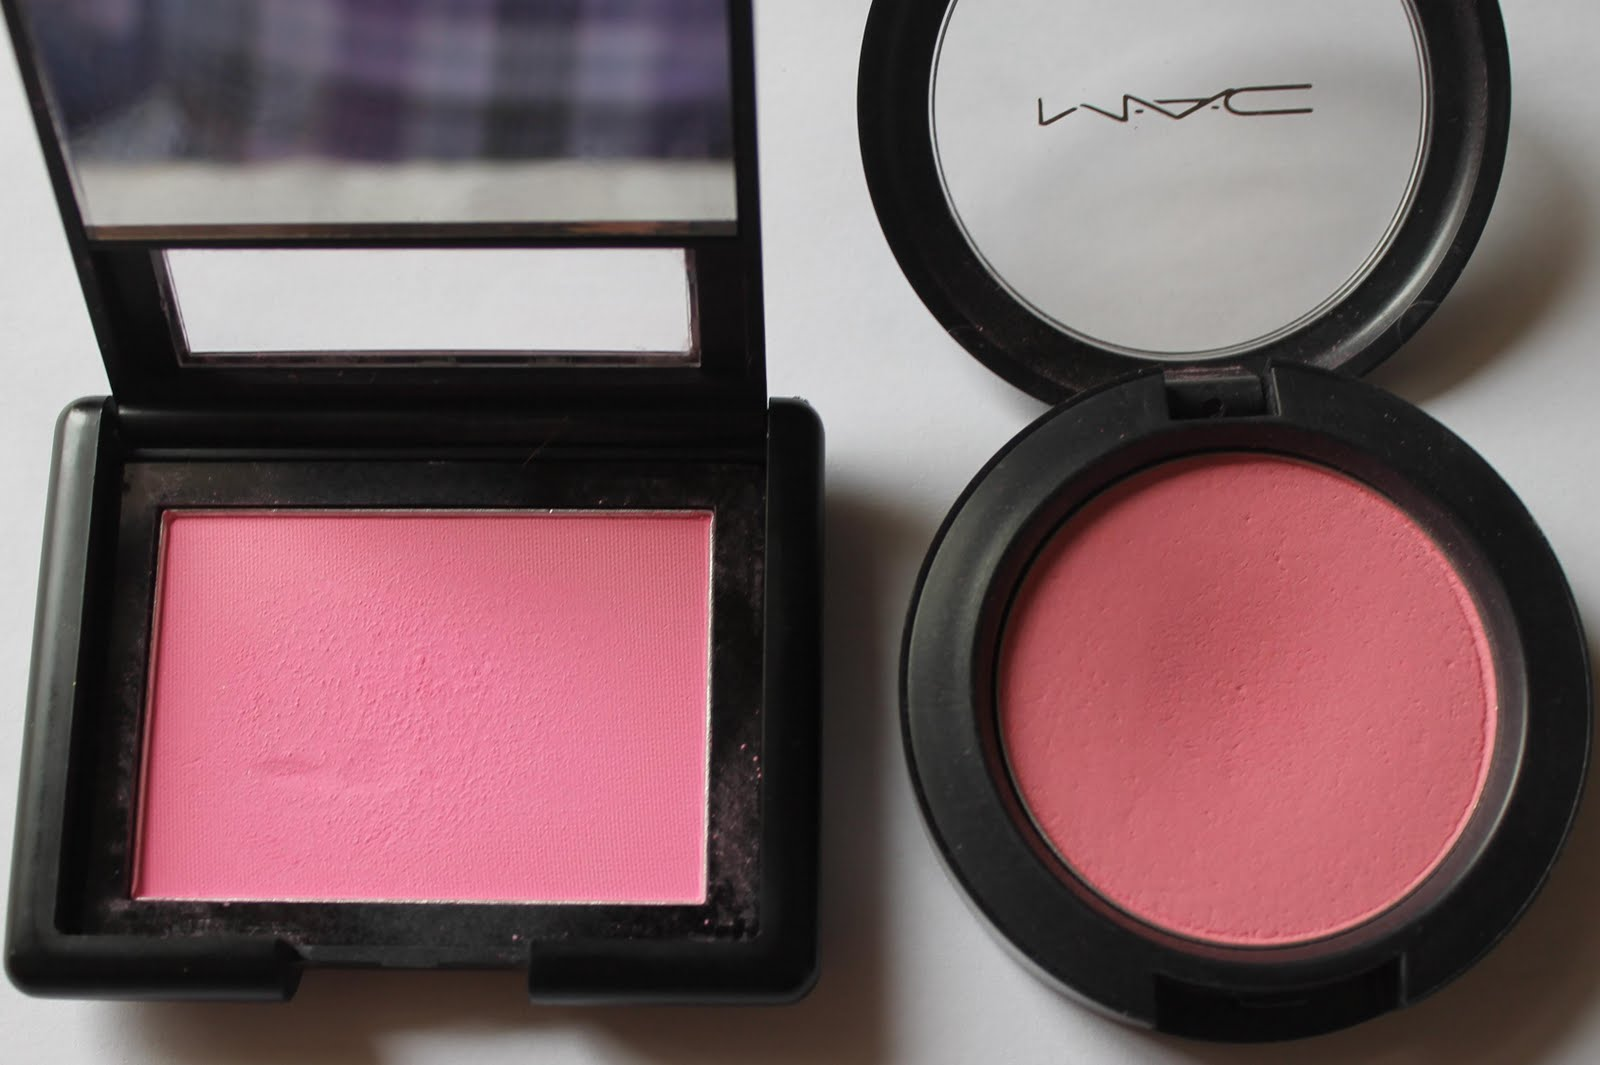 Elf blush in pink passion